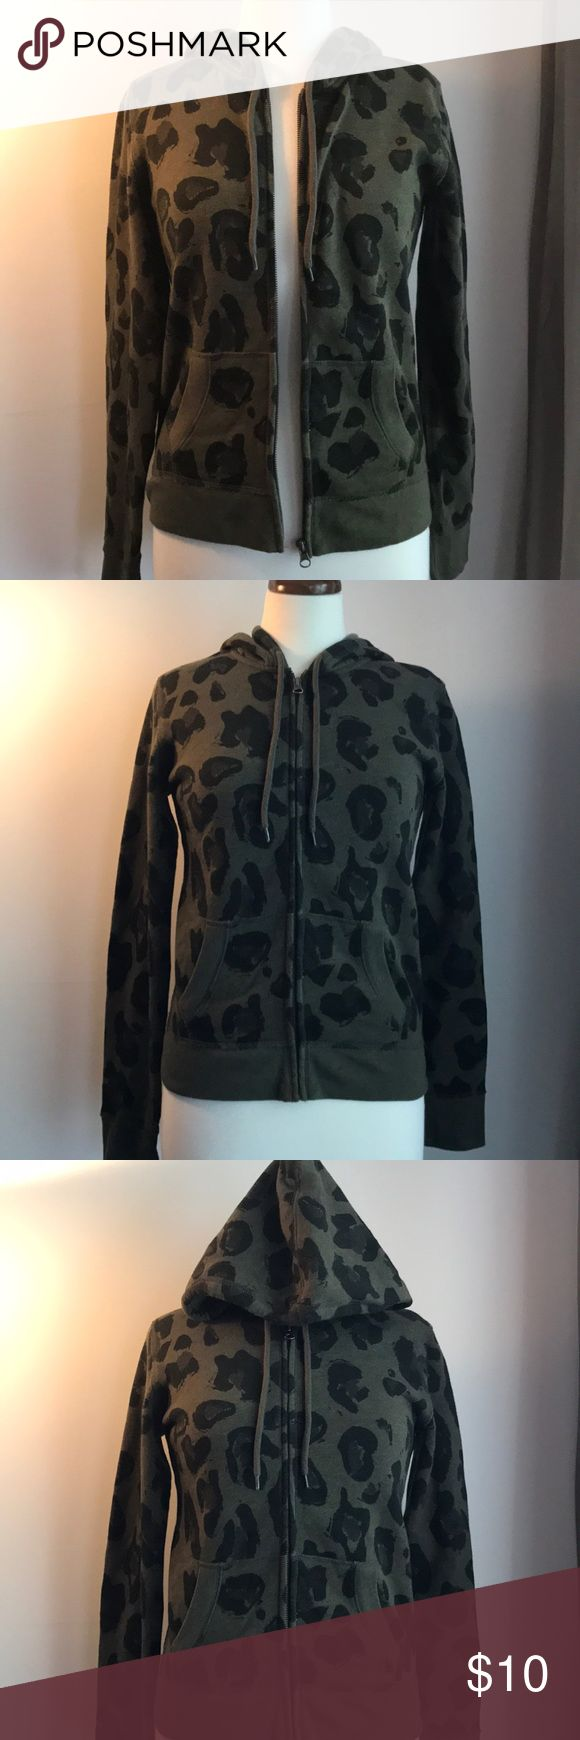 Fleece Sweatshirt by Mossimo Supply Co This item is in excellent used condition. No rips or stains. The zipper works Mossimo Supply Co Tops Sweatshirts & Hoodies